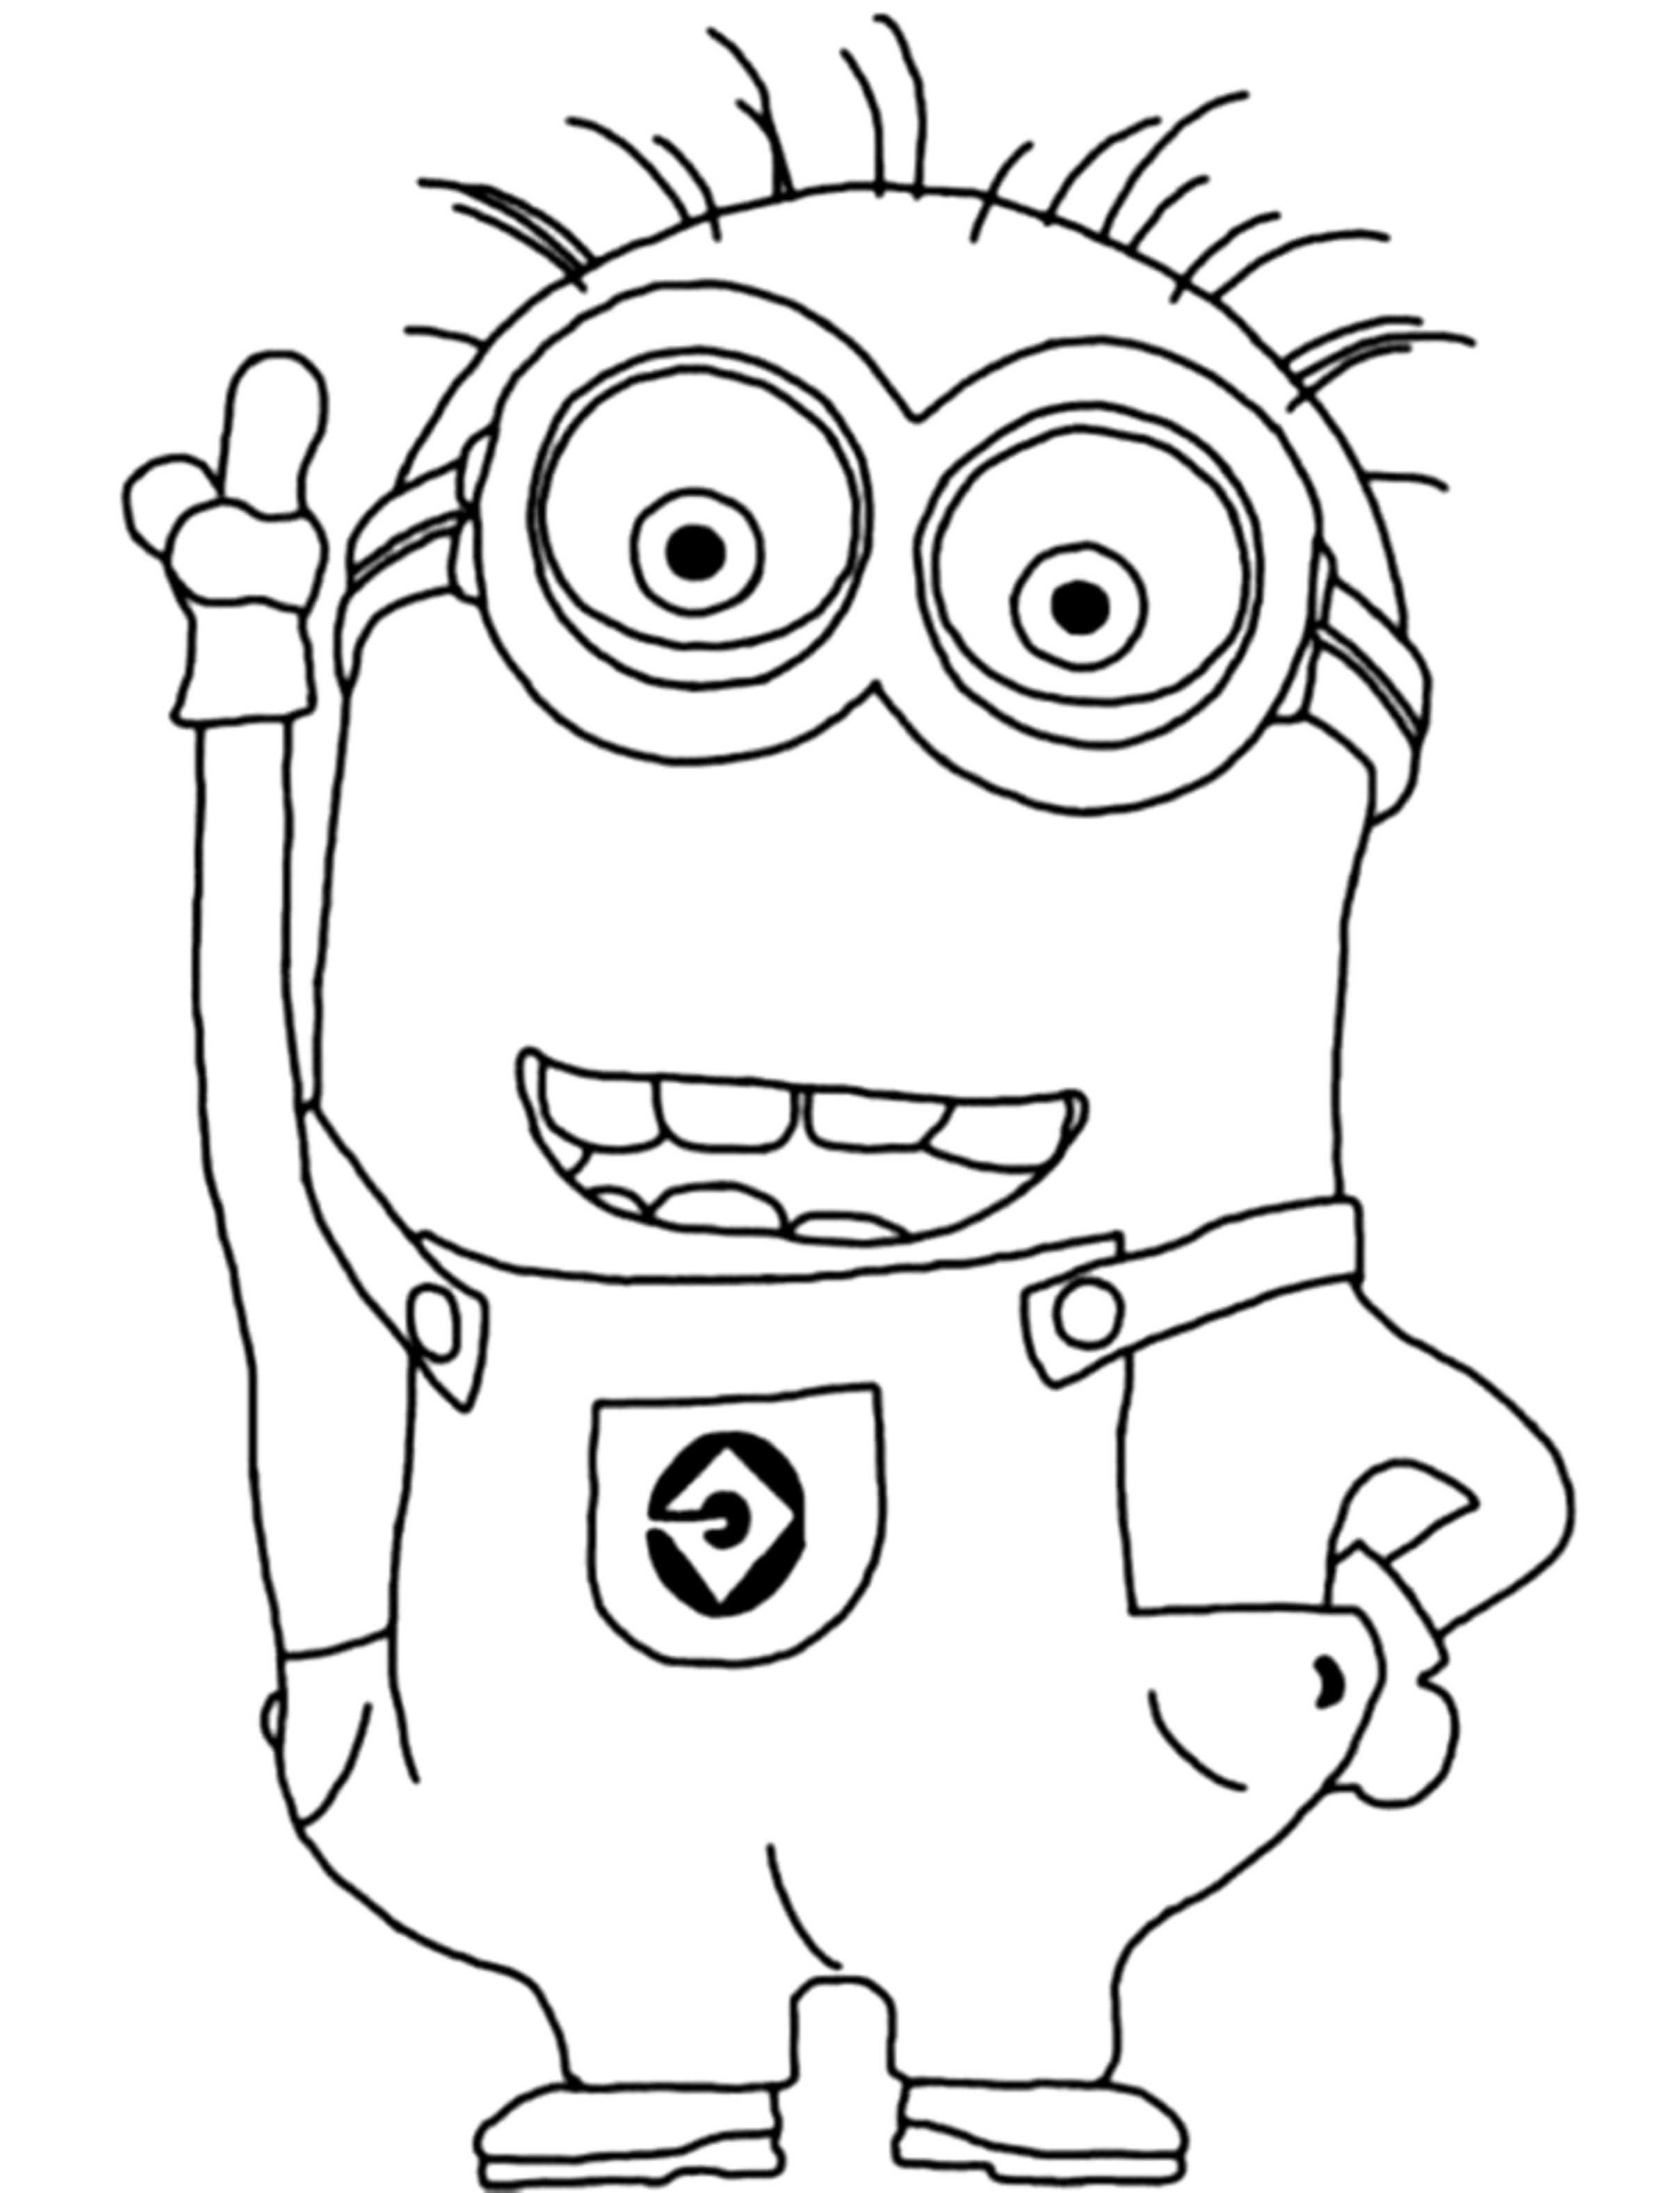 Genial Despicable Me Coloring Pages Minions Kevin